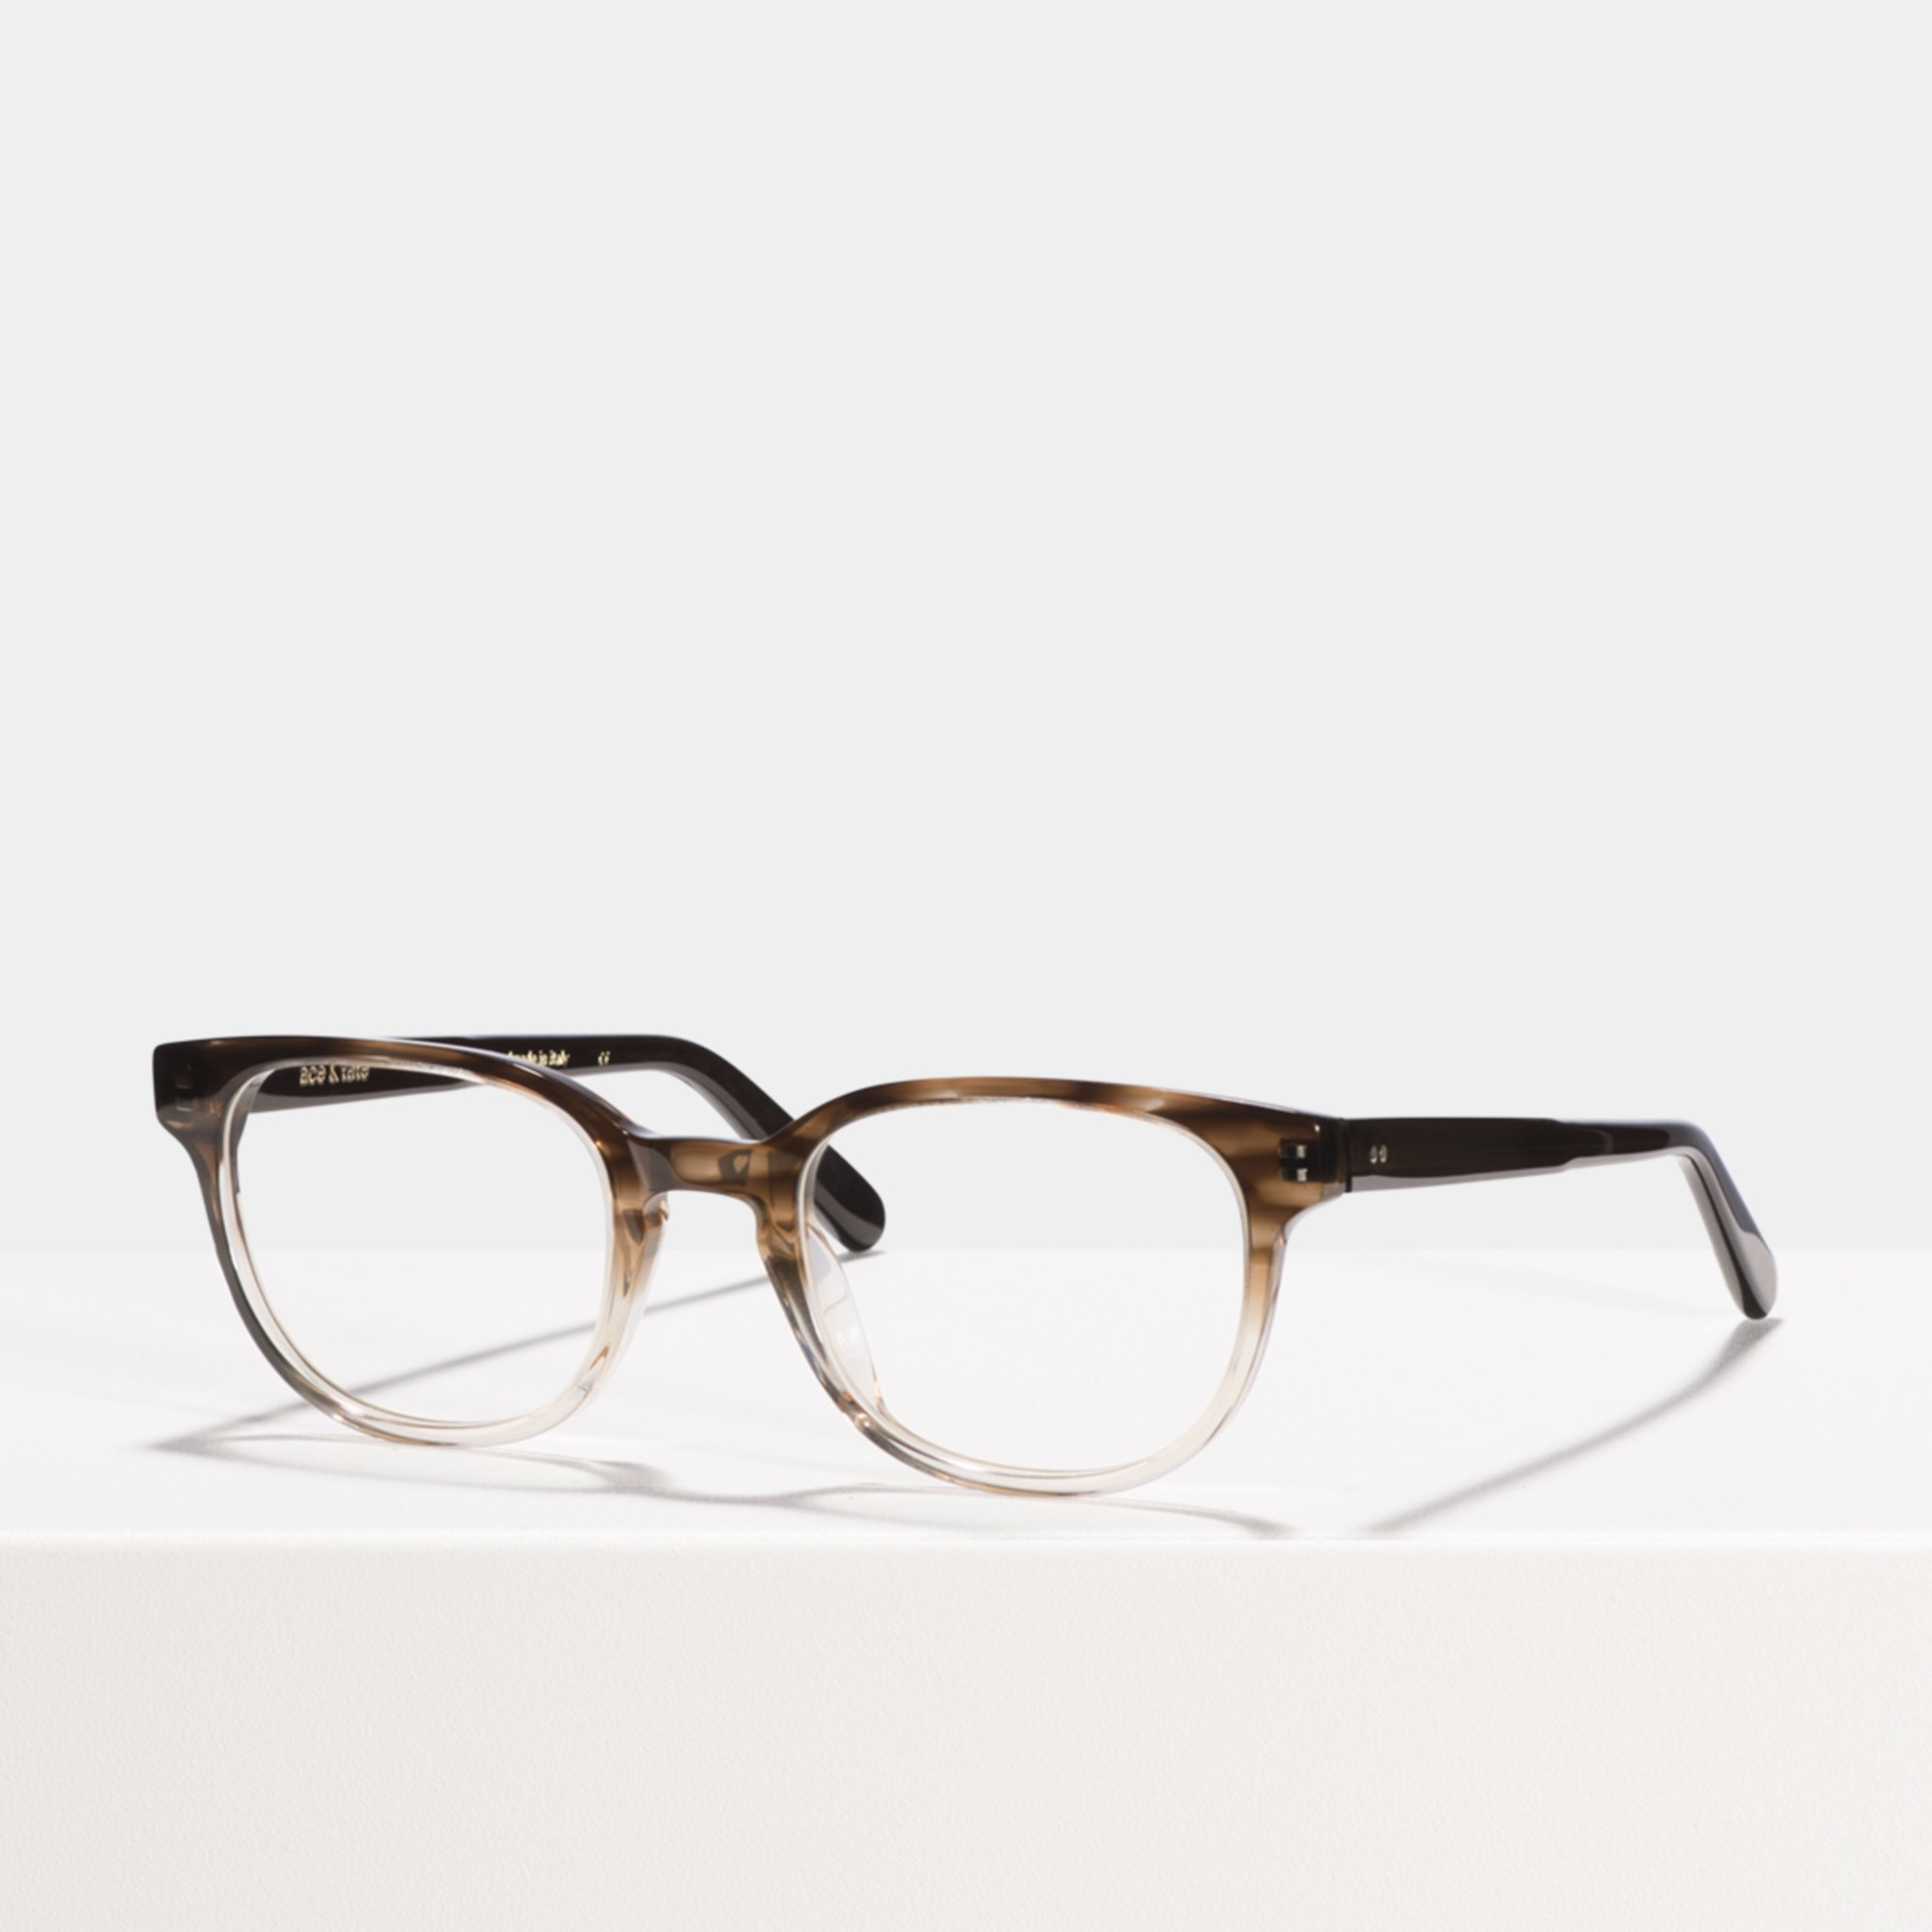 Ace & Tate Glasses |  acetate in Brown, Clear